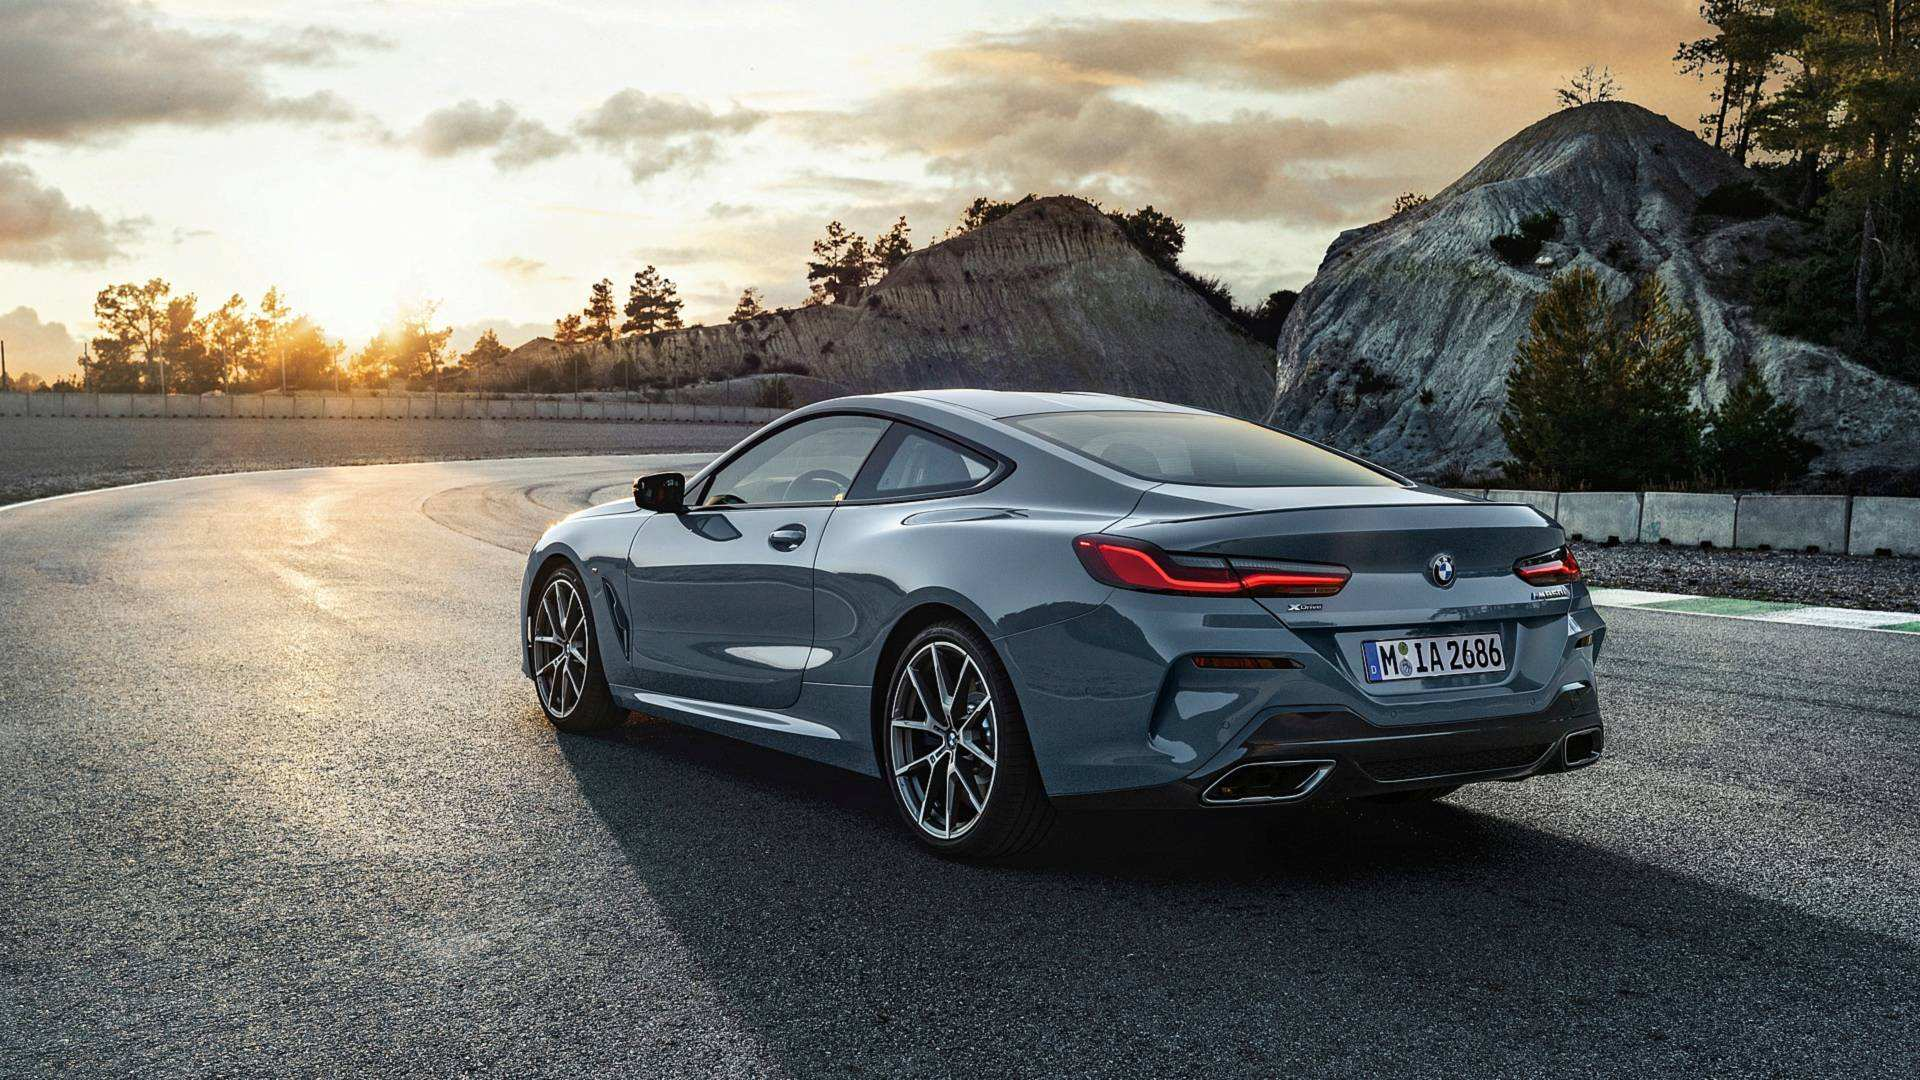 87 Concept of 2019 8 Series Bmw Reviews with 2019 8 Series Bmw